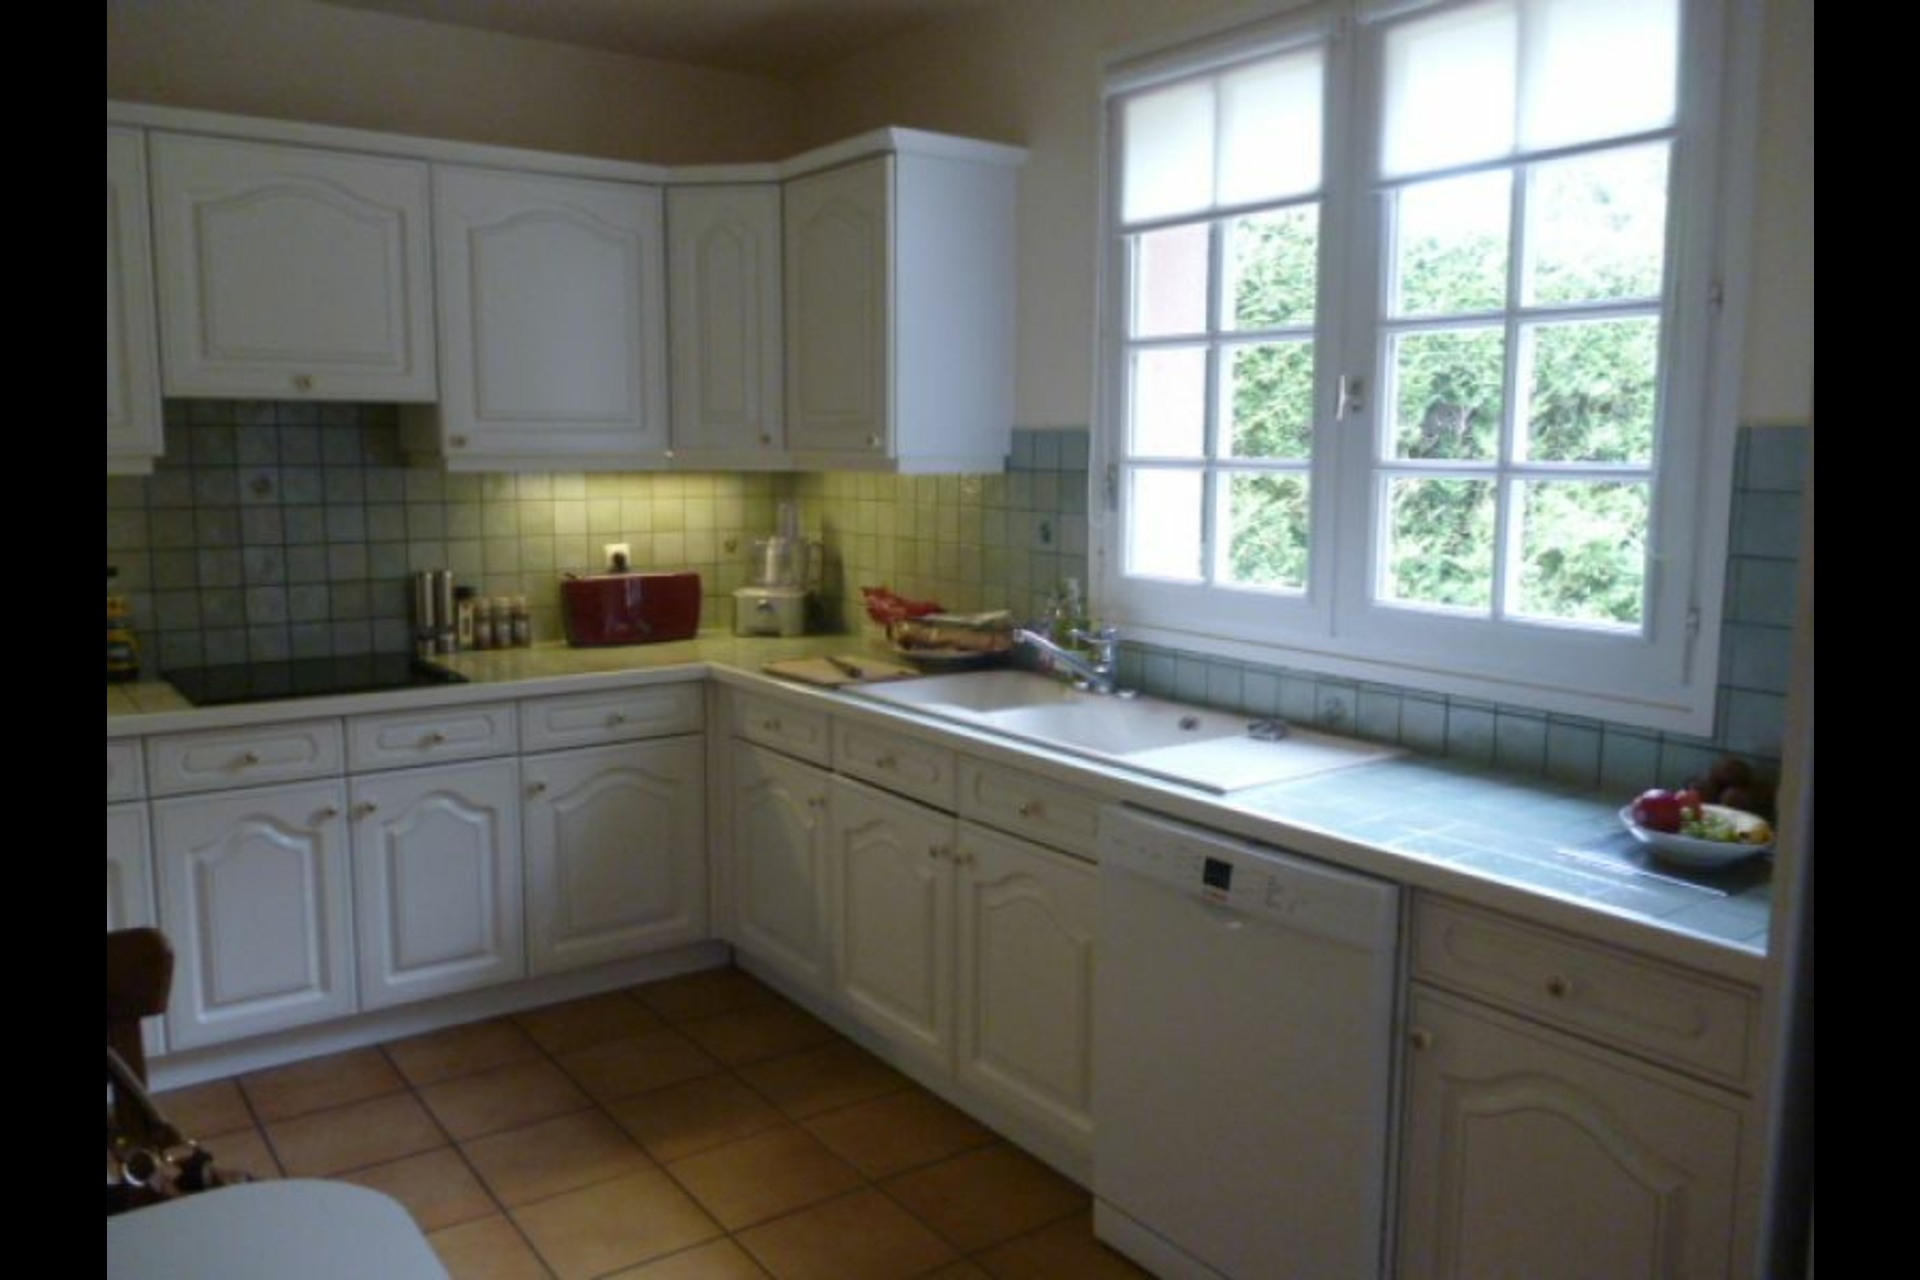 image 2 - House For rent feucherolles - 6 rooms